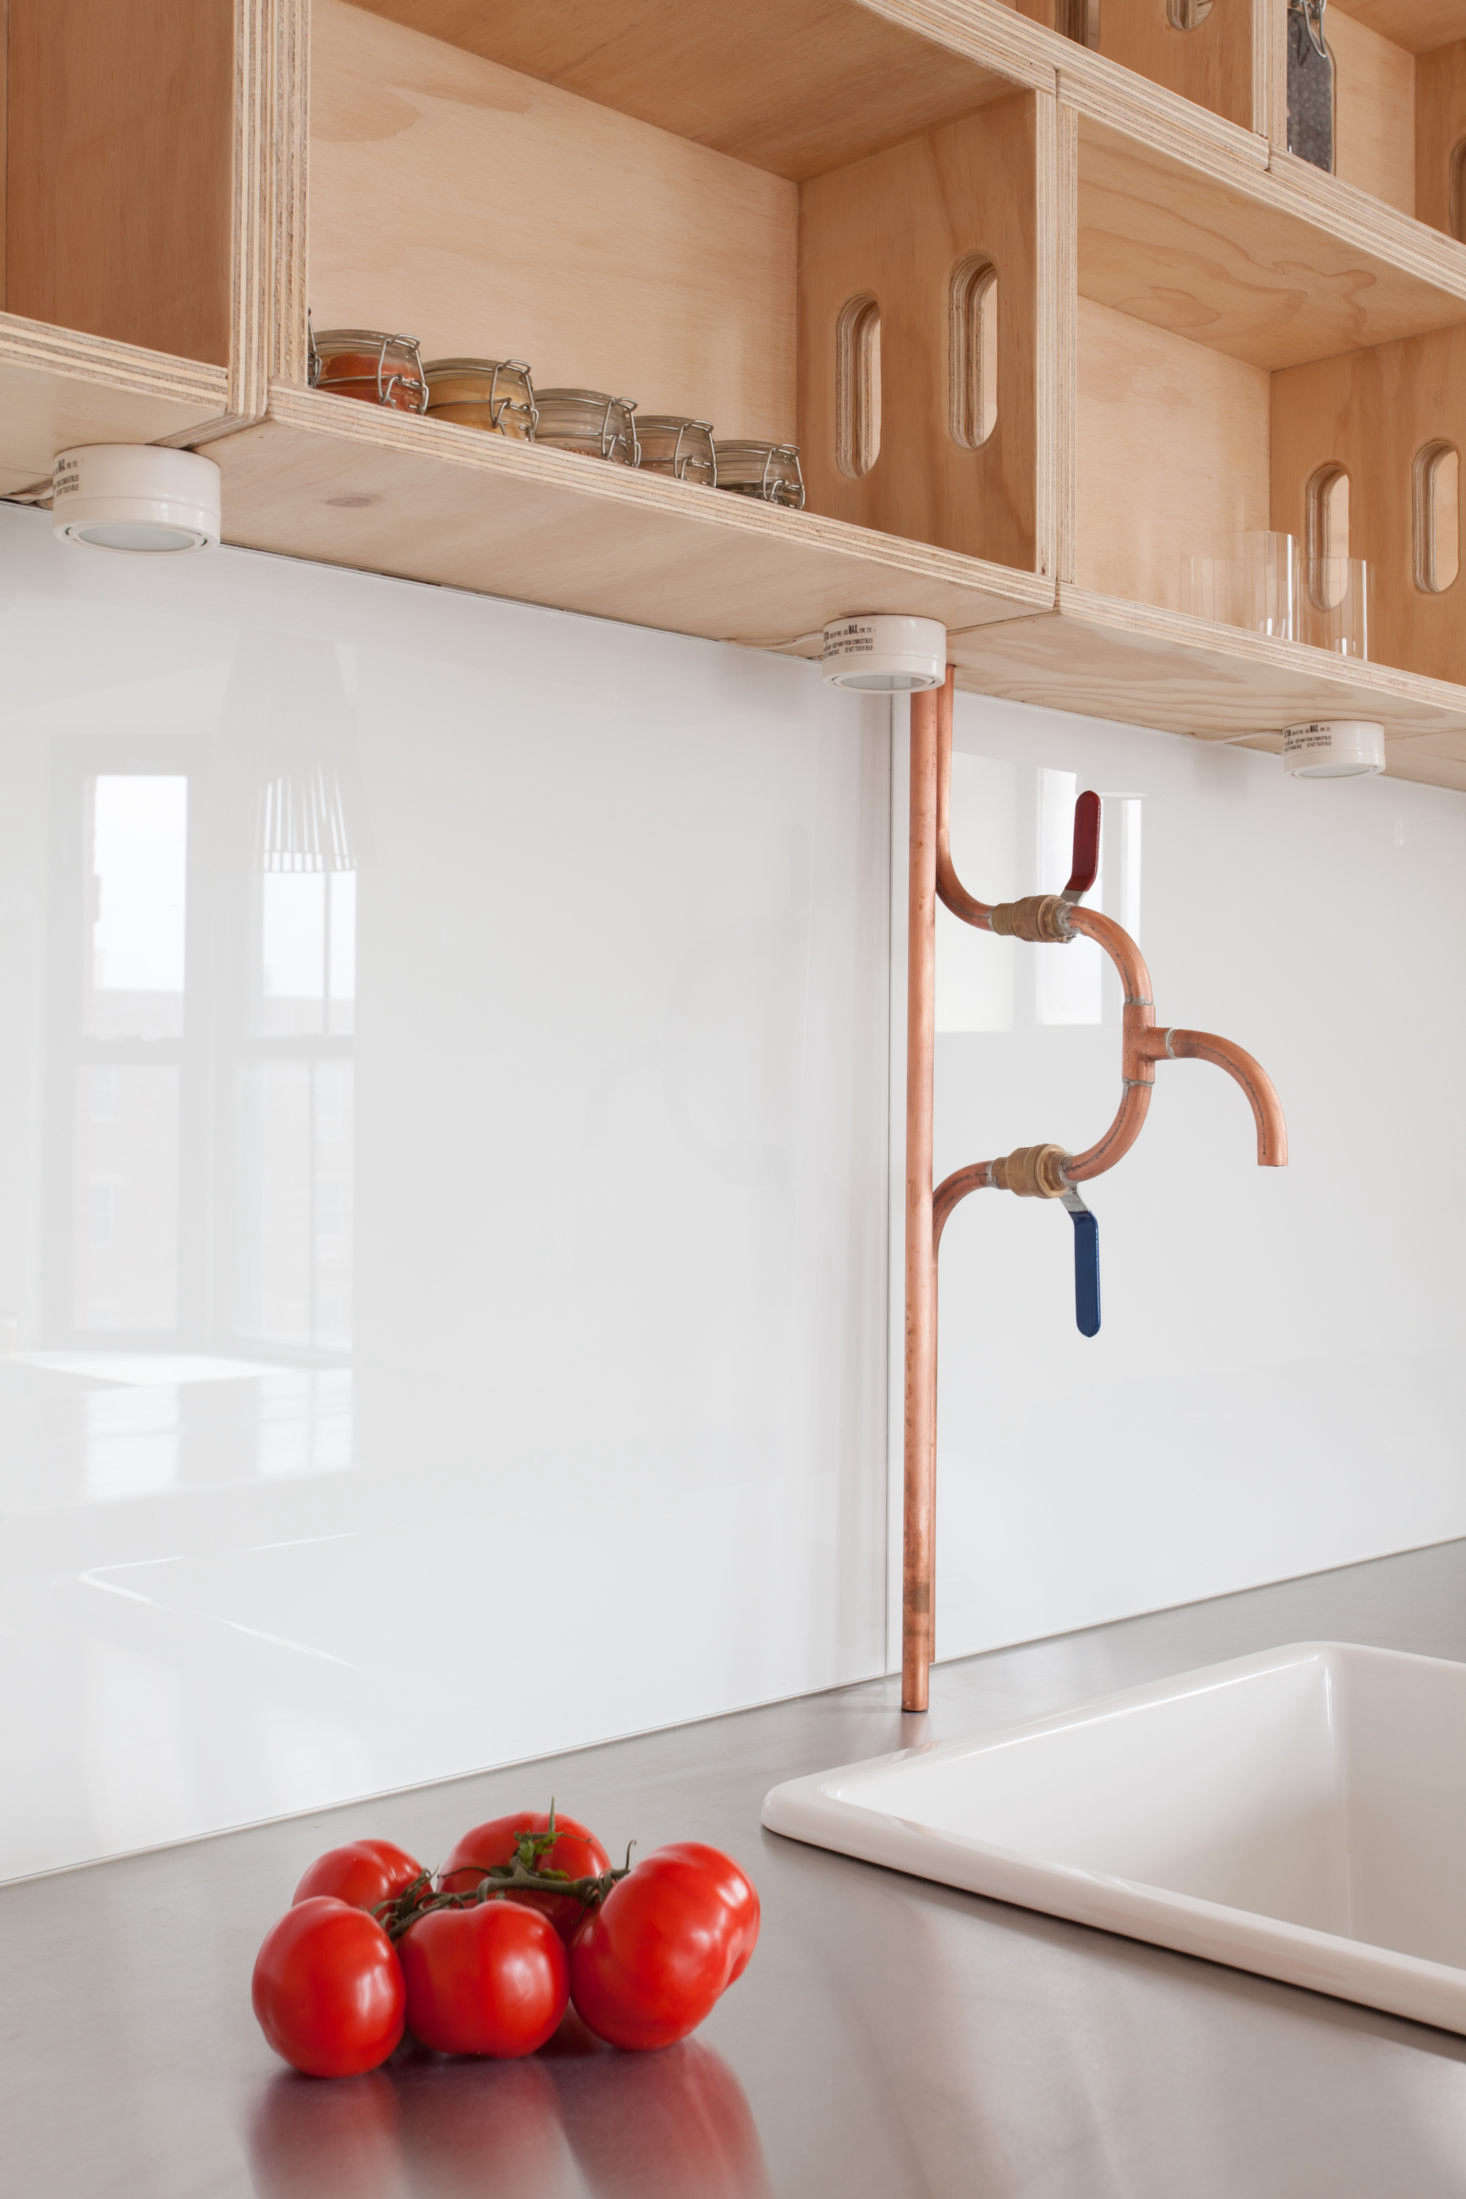 The architects had their plumber build the copper piping faucet: &#8